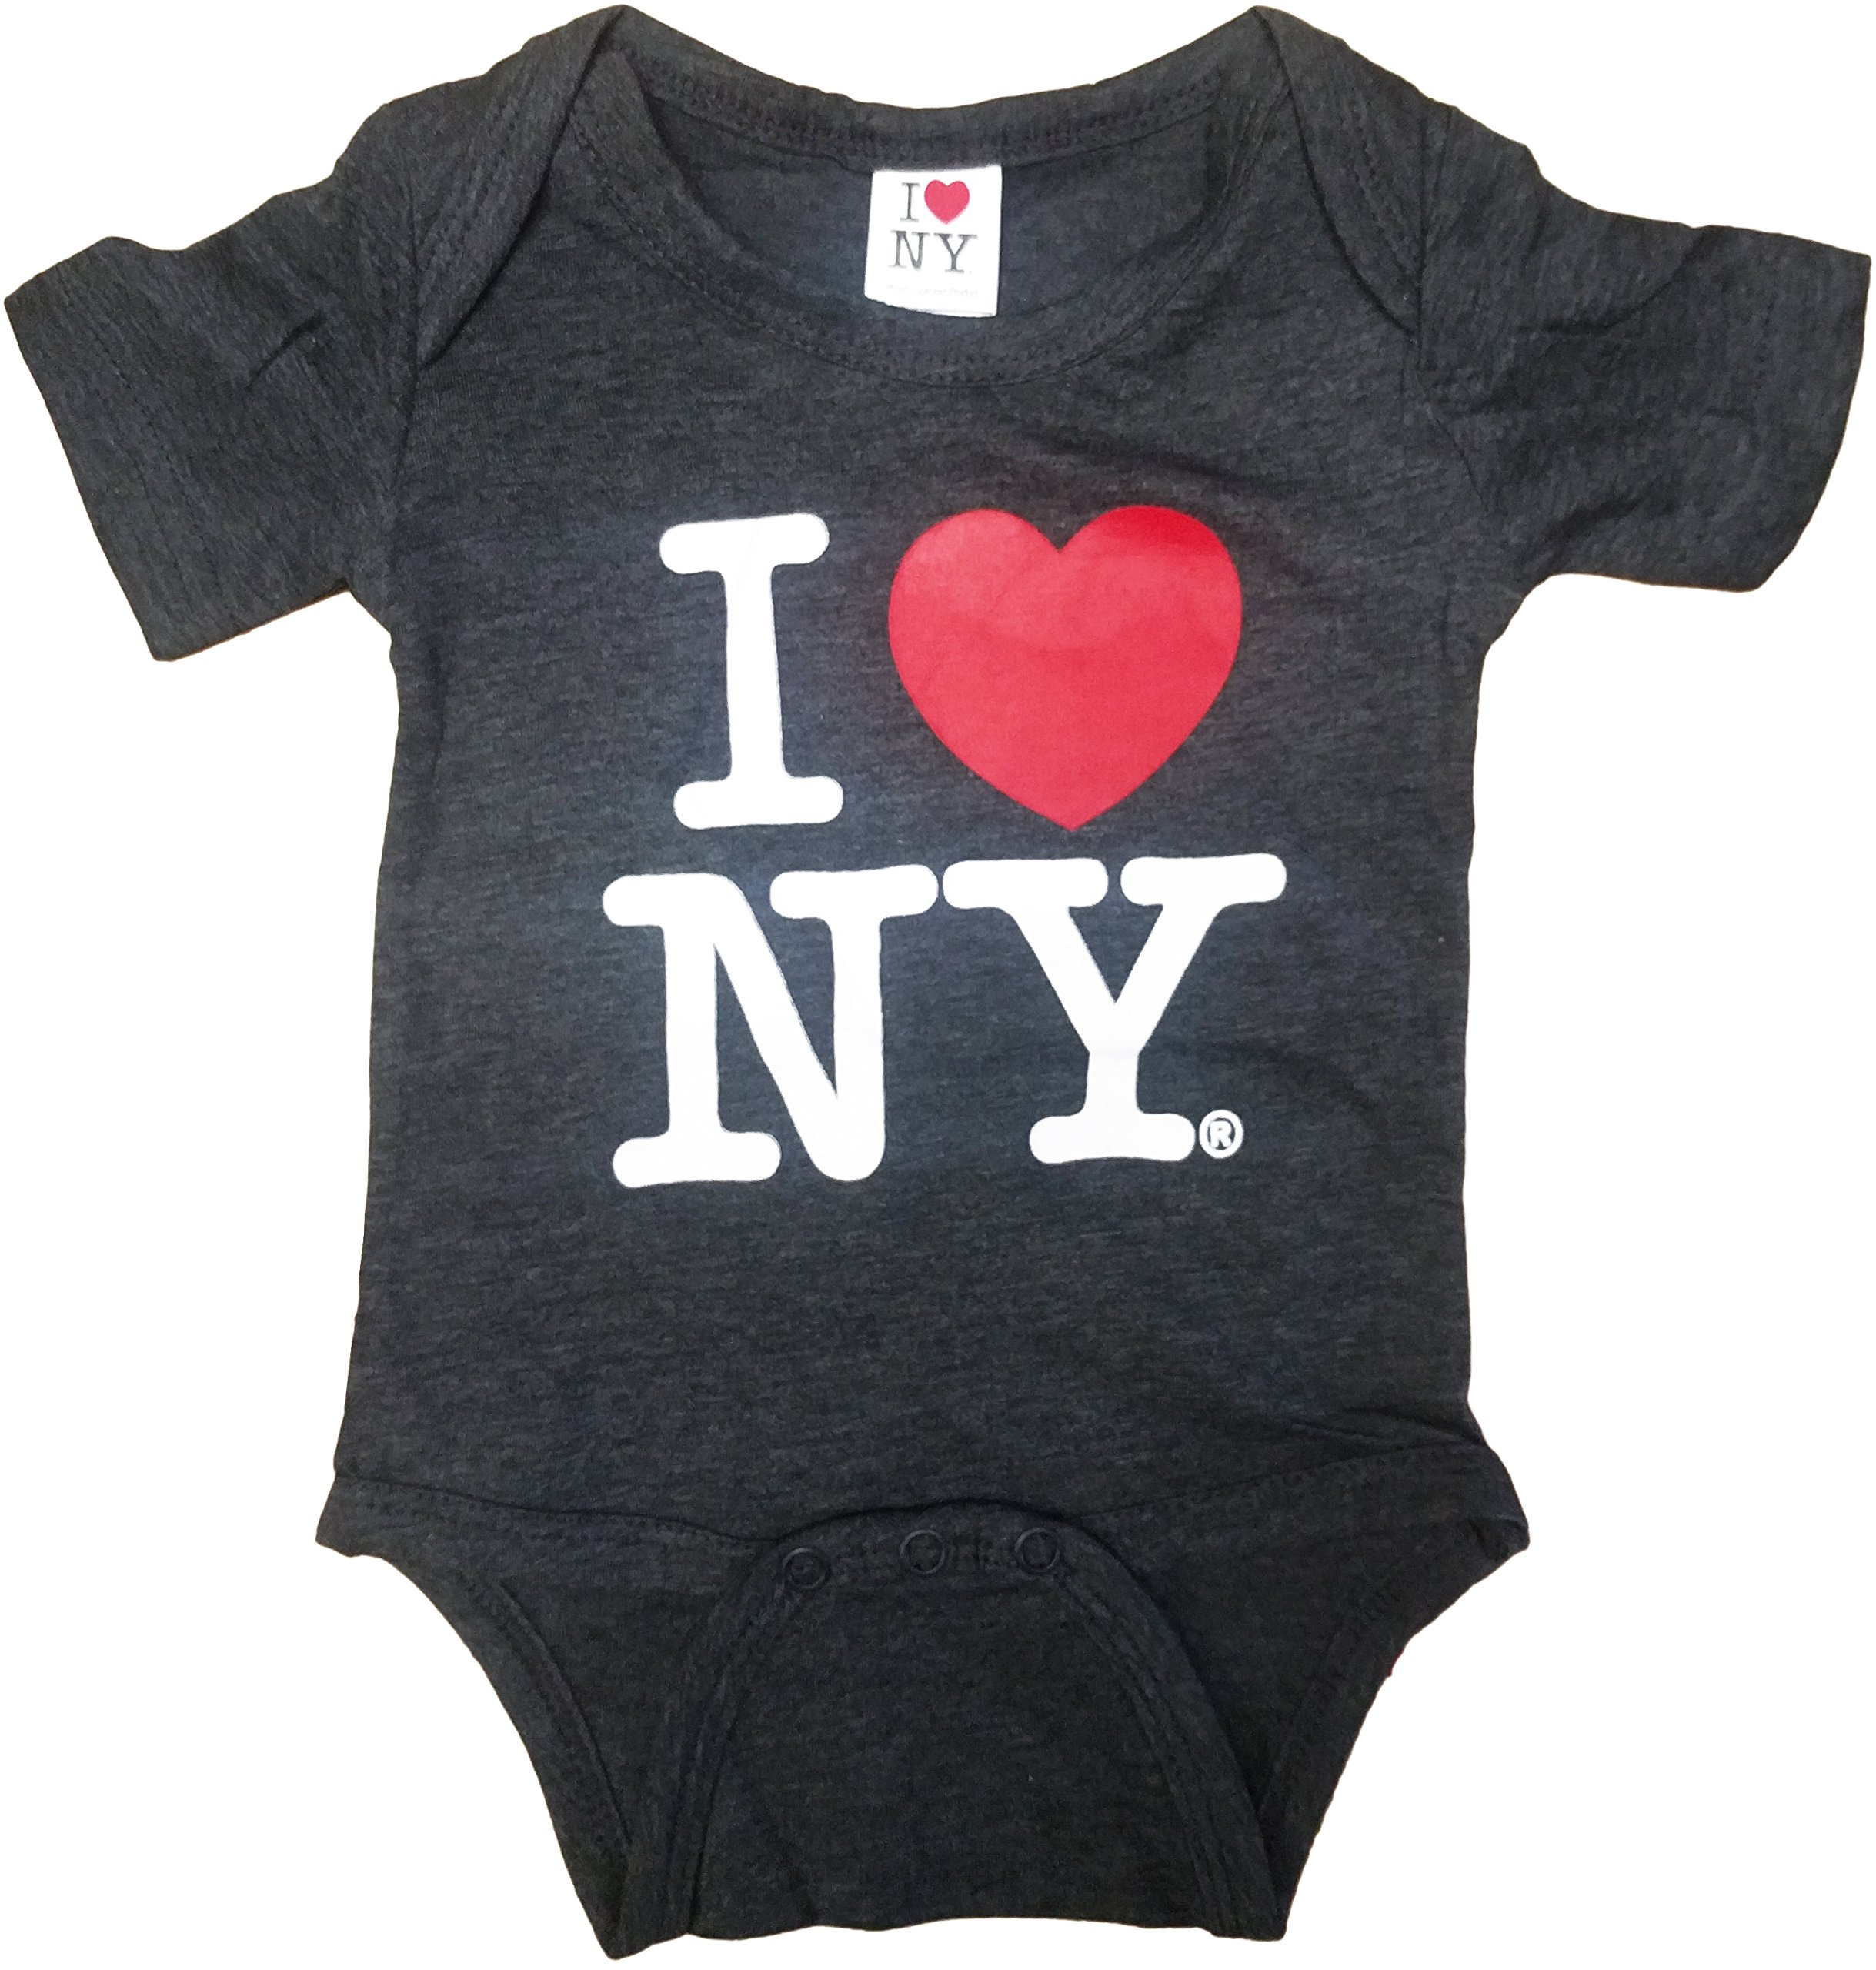 I Love NY Charcoal Baby Bodysuits Officially Licensed New York Infant (18m)